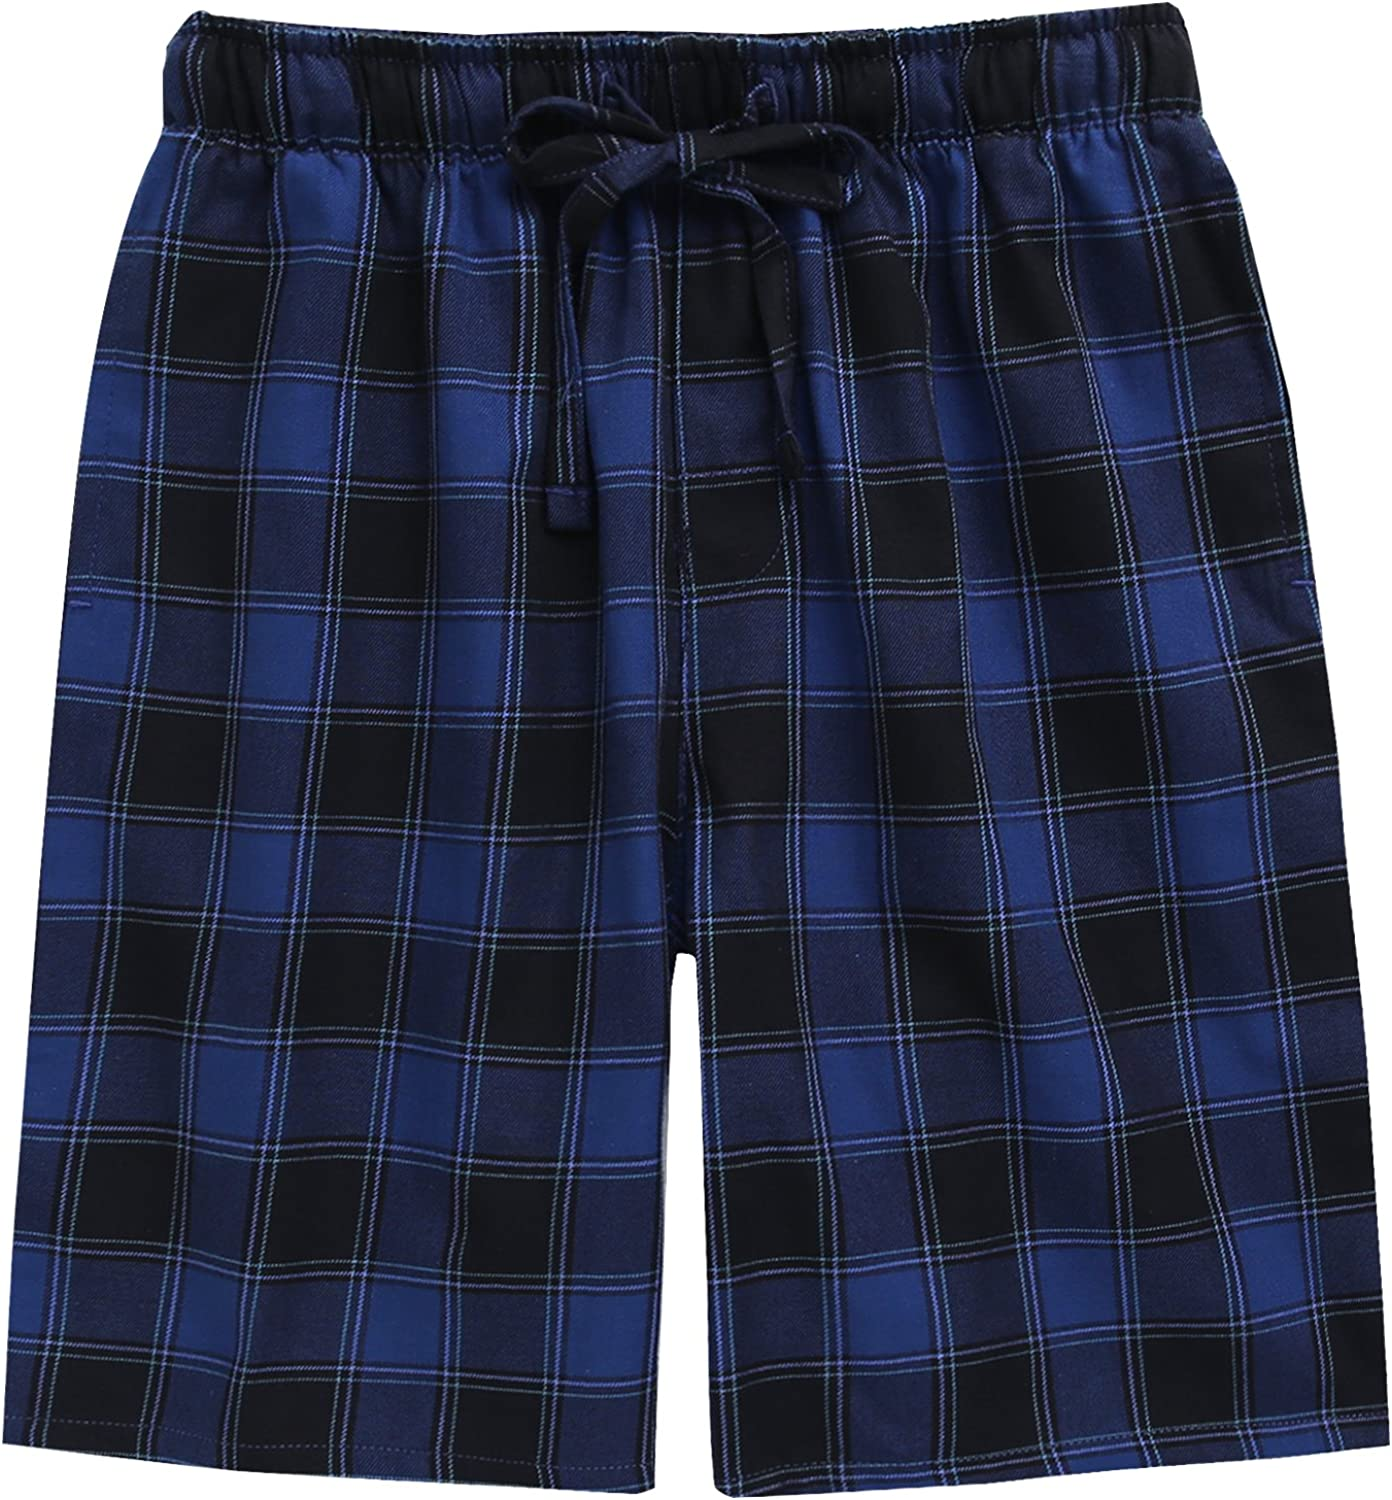 TINFL Cotton Lounge Pants for Men - 100% Woven Soft Cotton Plaid Check Lounger Sleeping Pajama Pants with Pockets